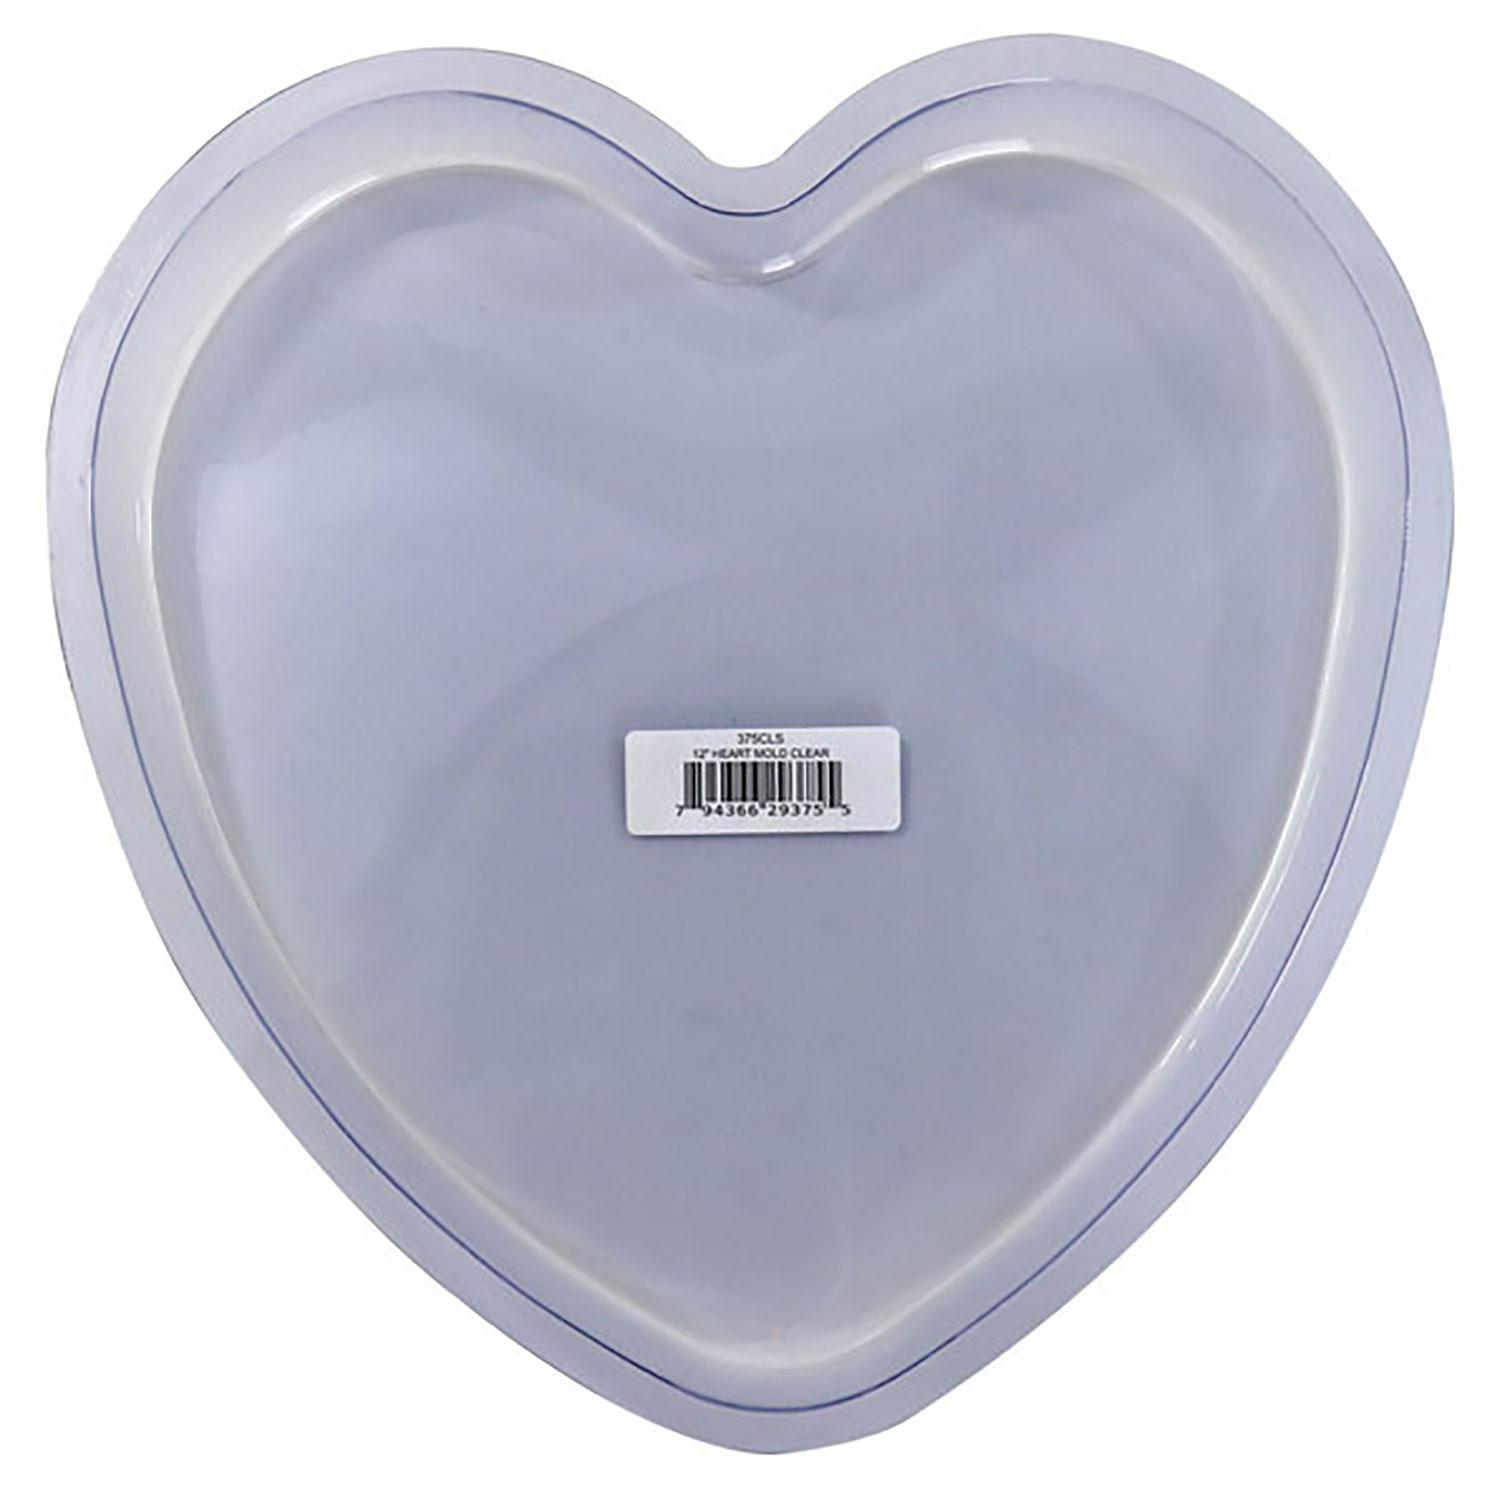 12 Heart Stepping Stone Mold